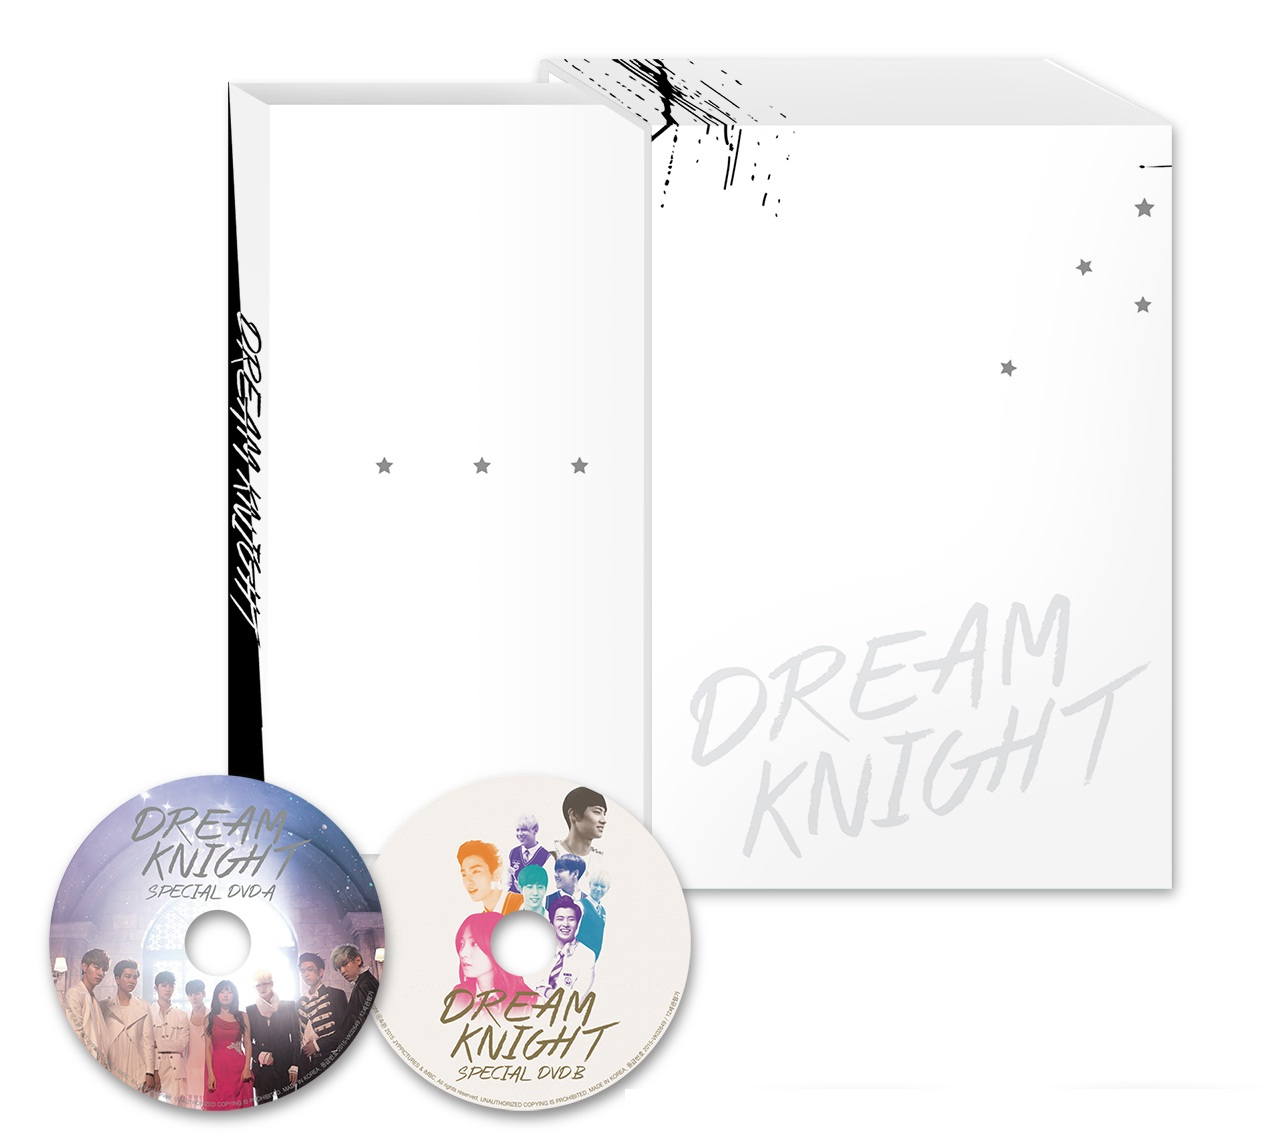 [DVD] GOT7 -Dream Knight